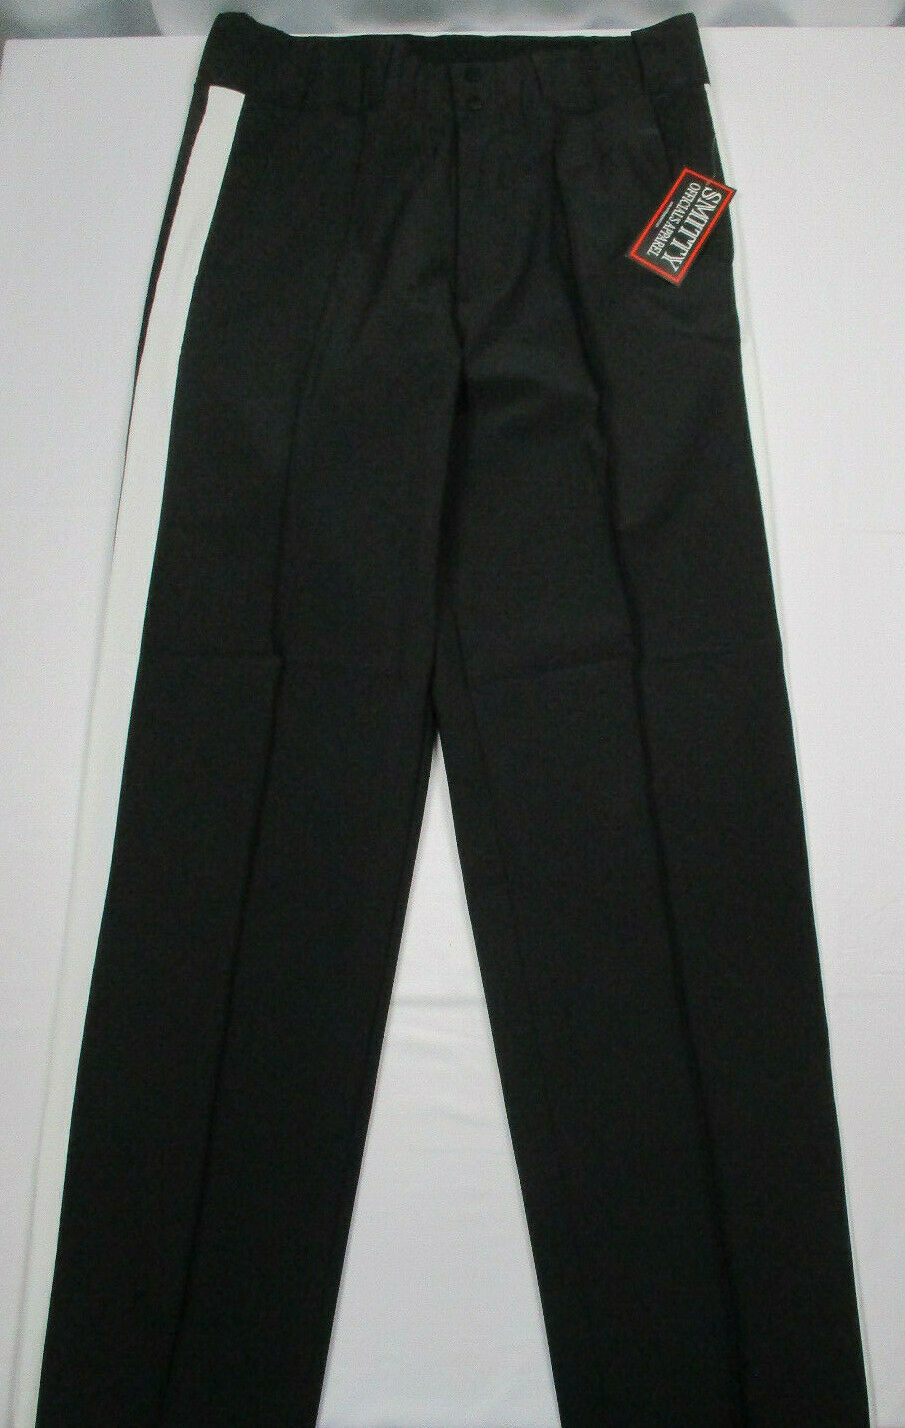 NWT SMITTY FBS-176 Smitty Polyester Spandex Football Pants Referee 38 UNHEMMED